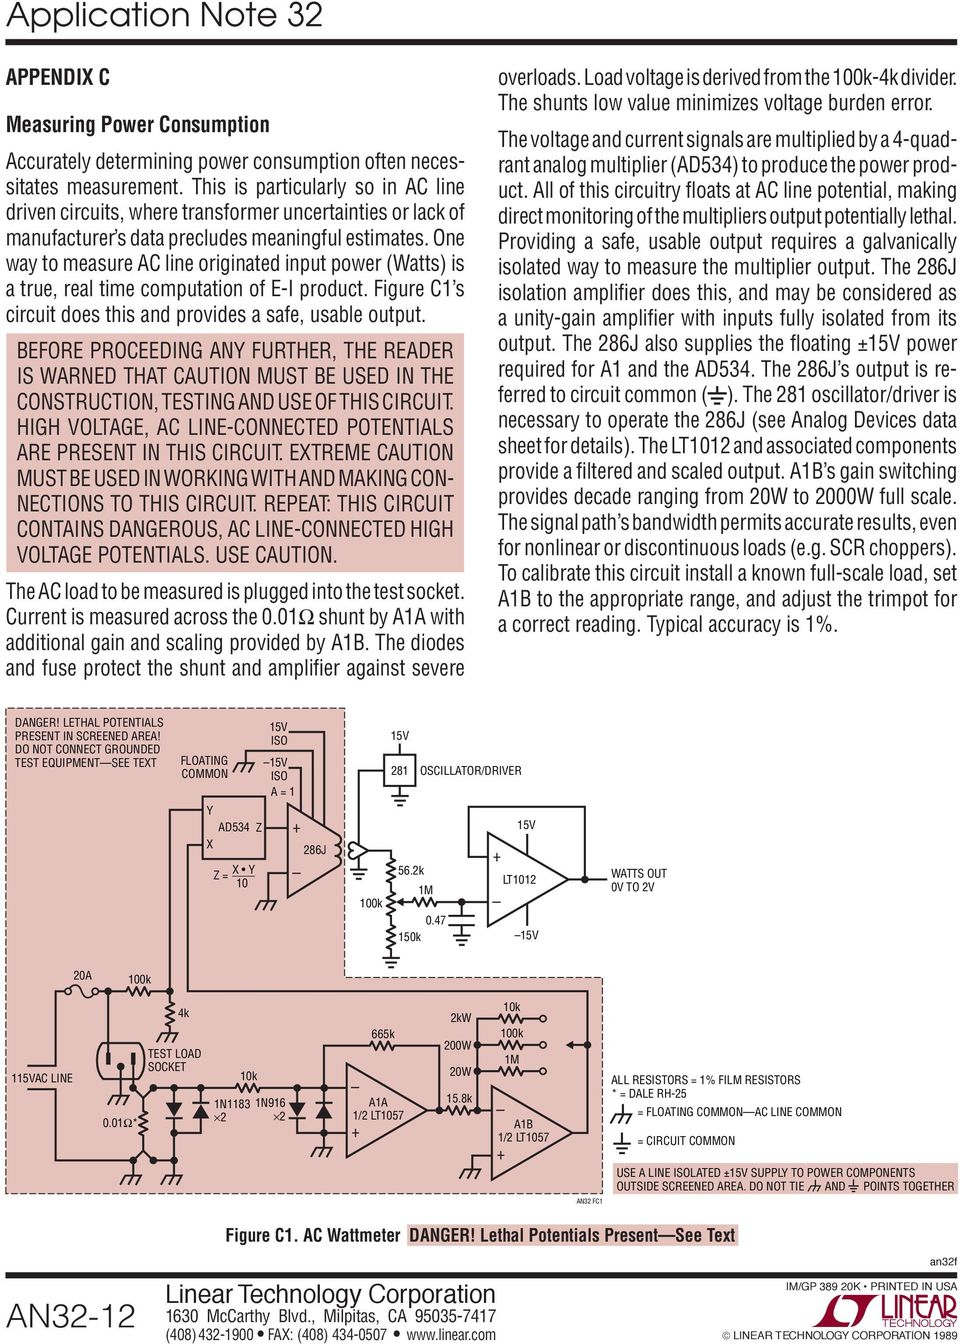 Application Note 32 March High Effi Ciency Linear Regulators An32 1 Modify Old Battery Charger Into Automatic Using Power Scr And Ca723 One Way To Measure Ac Line Originated Input Watts Is A True